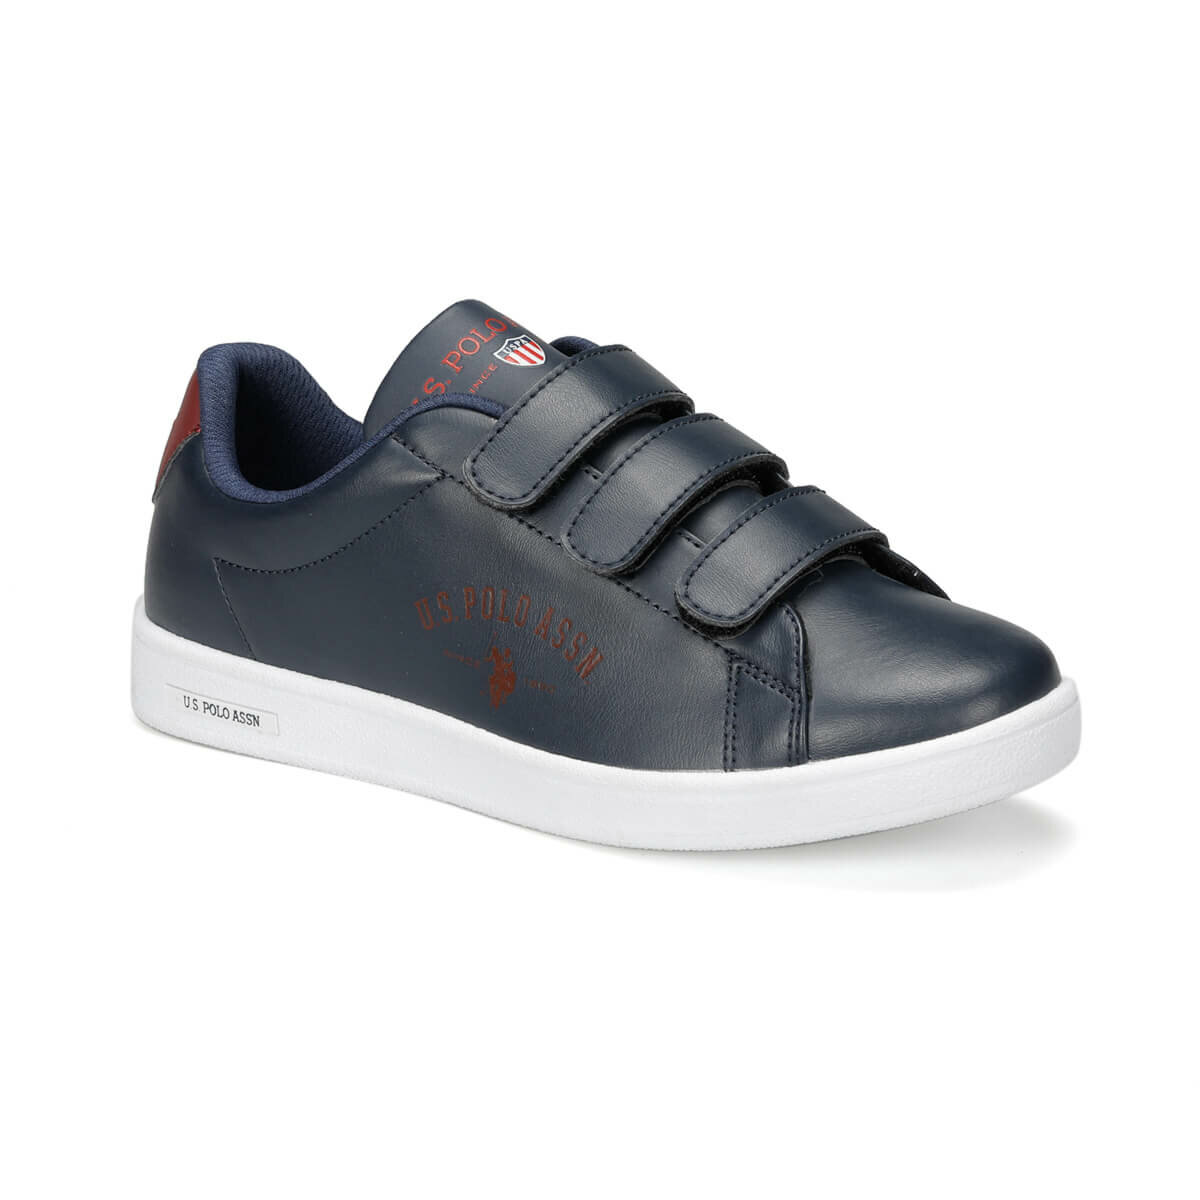 FLO SINGER 9PR Navy Blue Women 'S Sneaker Shoes U.S. POLO ASSN.